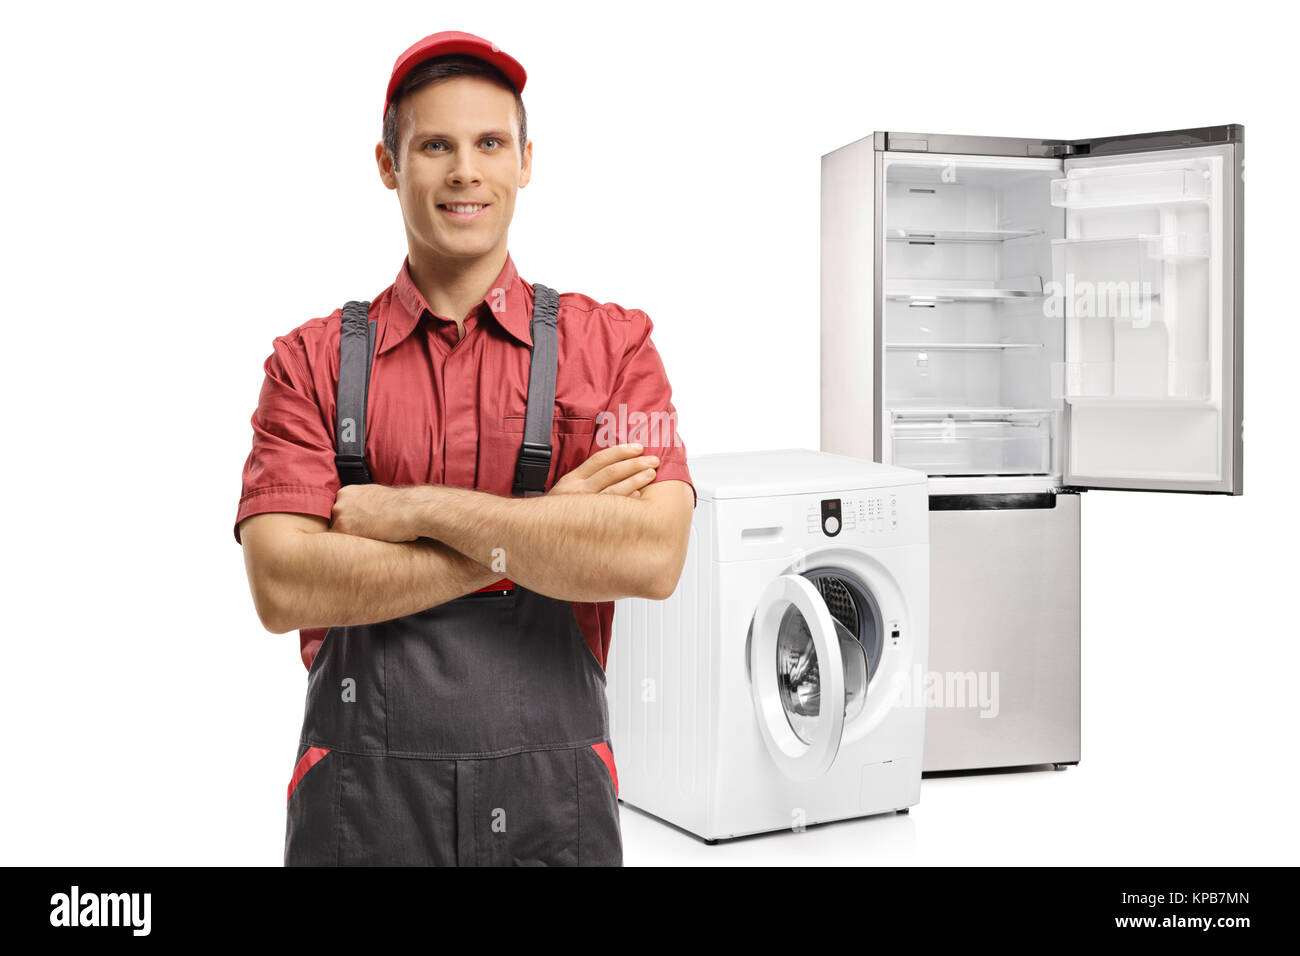 Repairman with his arms folded in front of a washing machine and a refrigerator isolated on white background - Stock Image